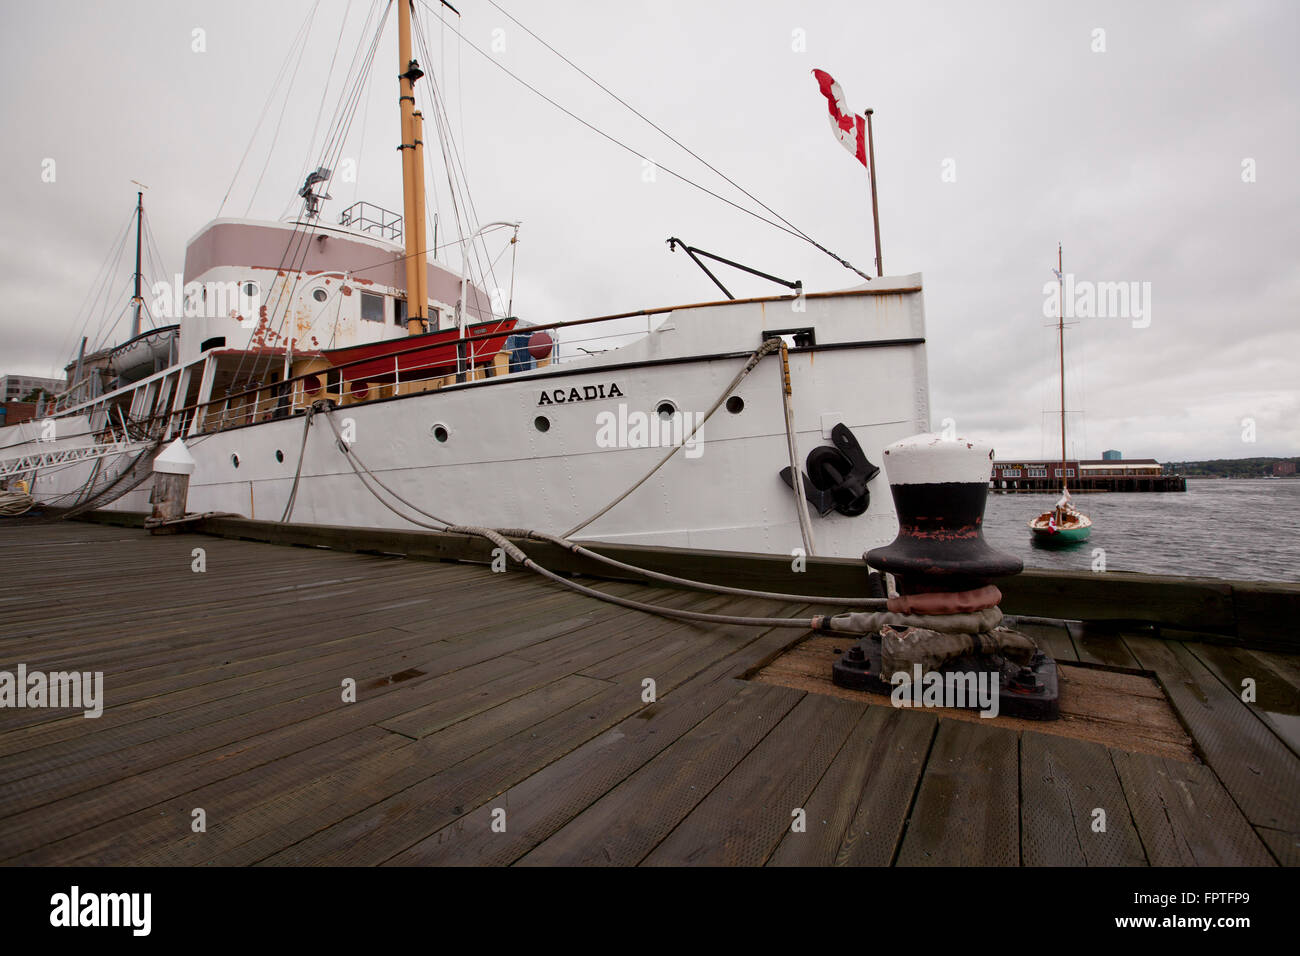 CSS Acadia was the first vessel specifically designed and built to survey Canada's northern - Stock Image